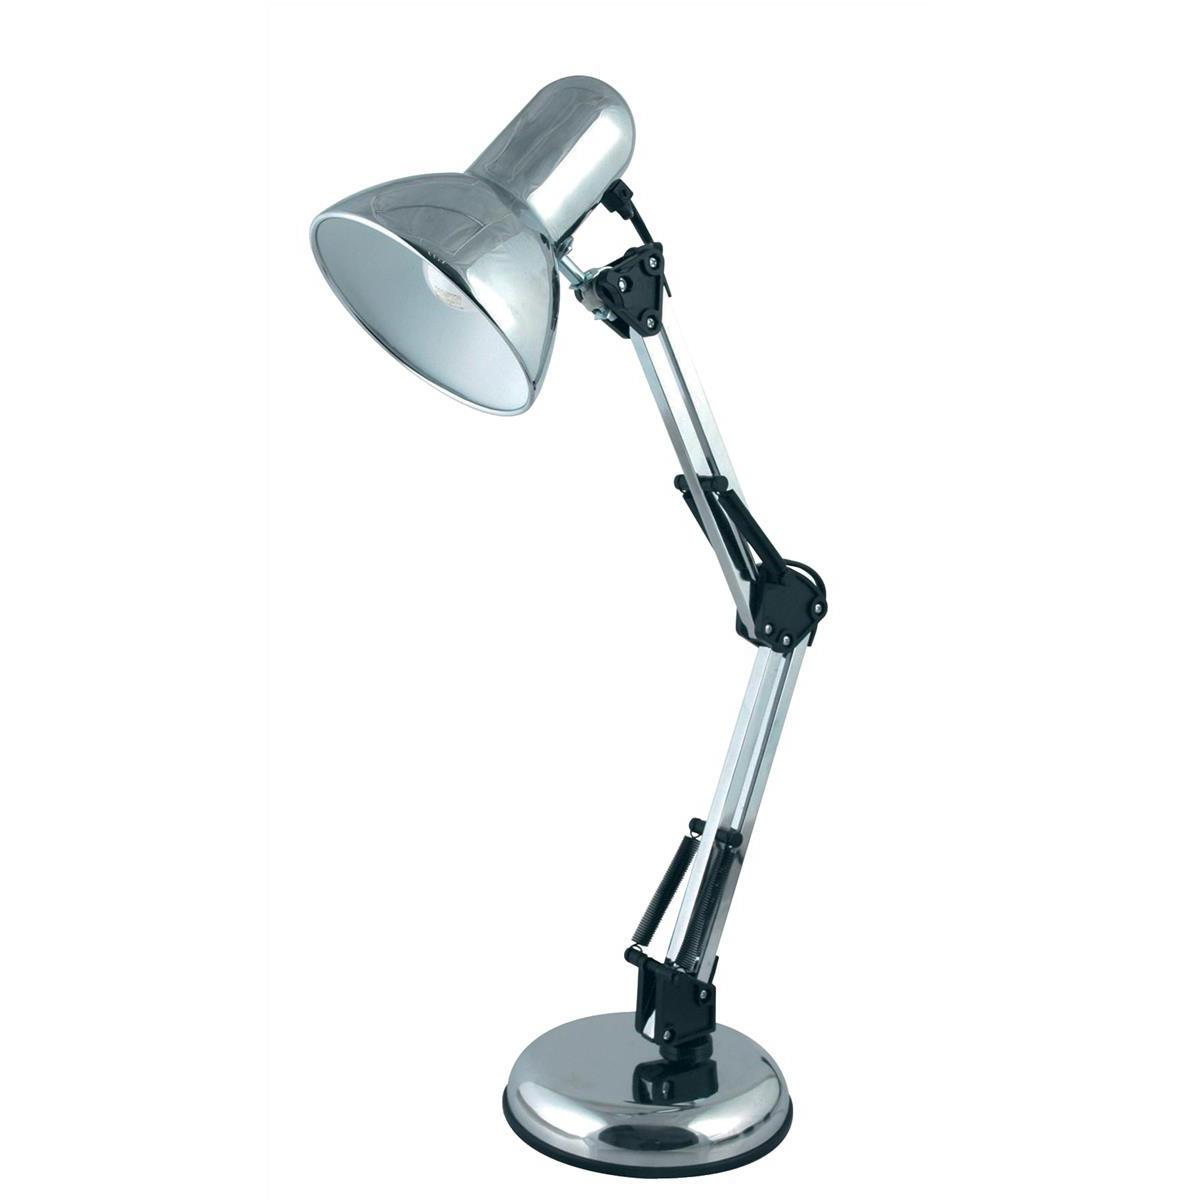 Image for Desk Lamp Adjustable Arm 40W Maximum Height of 520mm Base Size of 150x150x40mm Polished Chrome